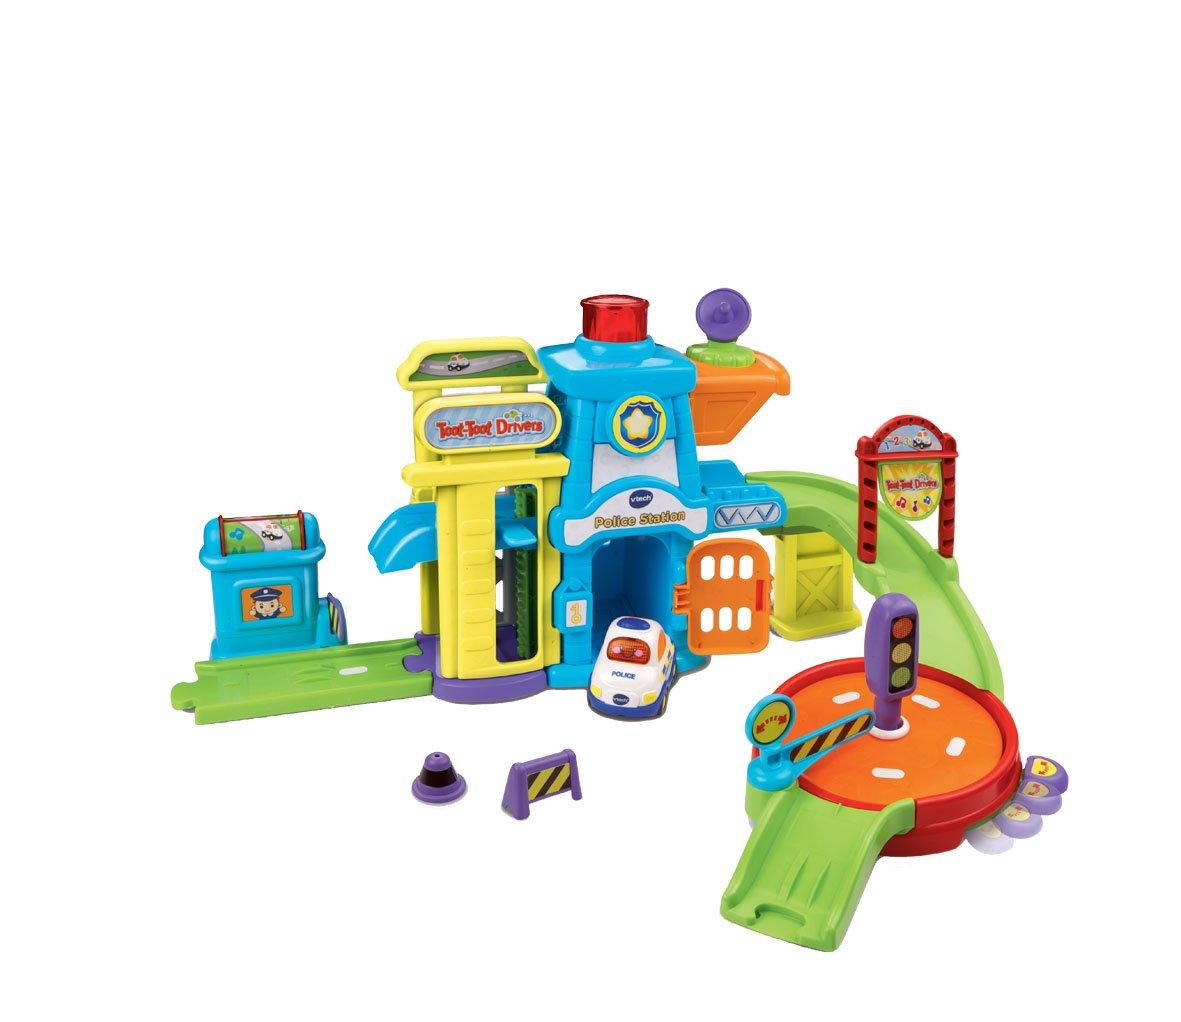 vtech baby toot toot drivers police station multi coloured